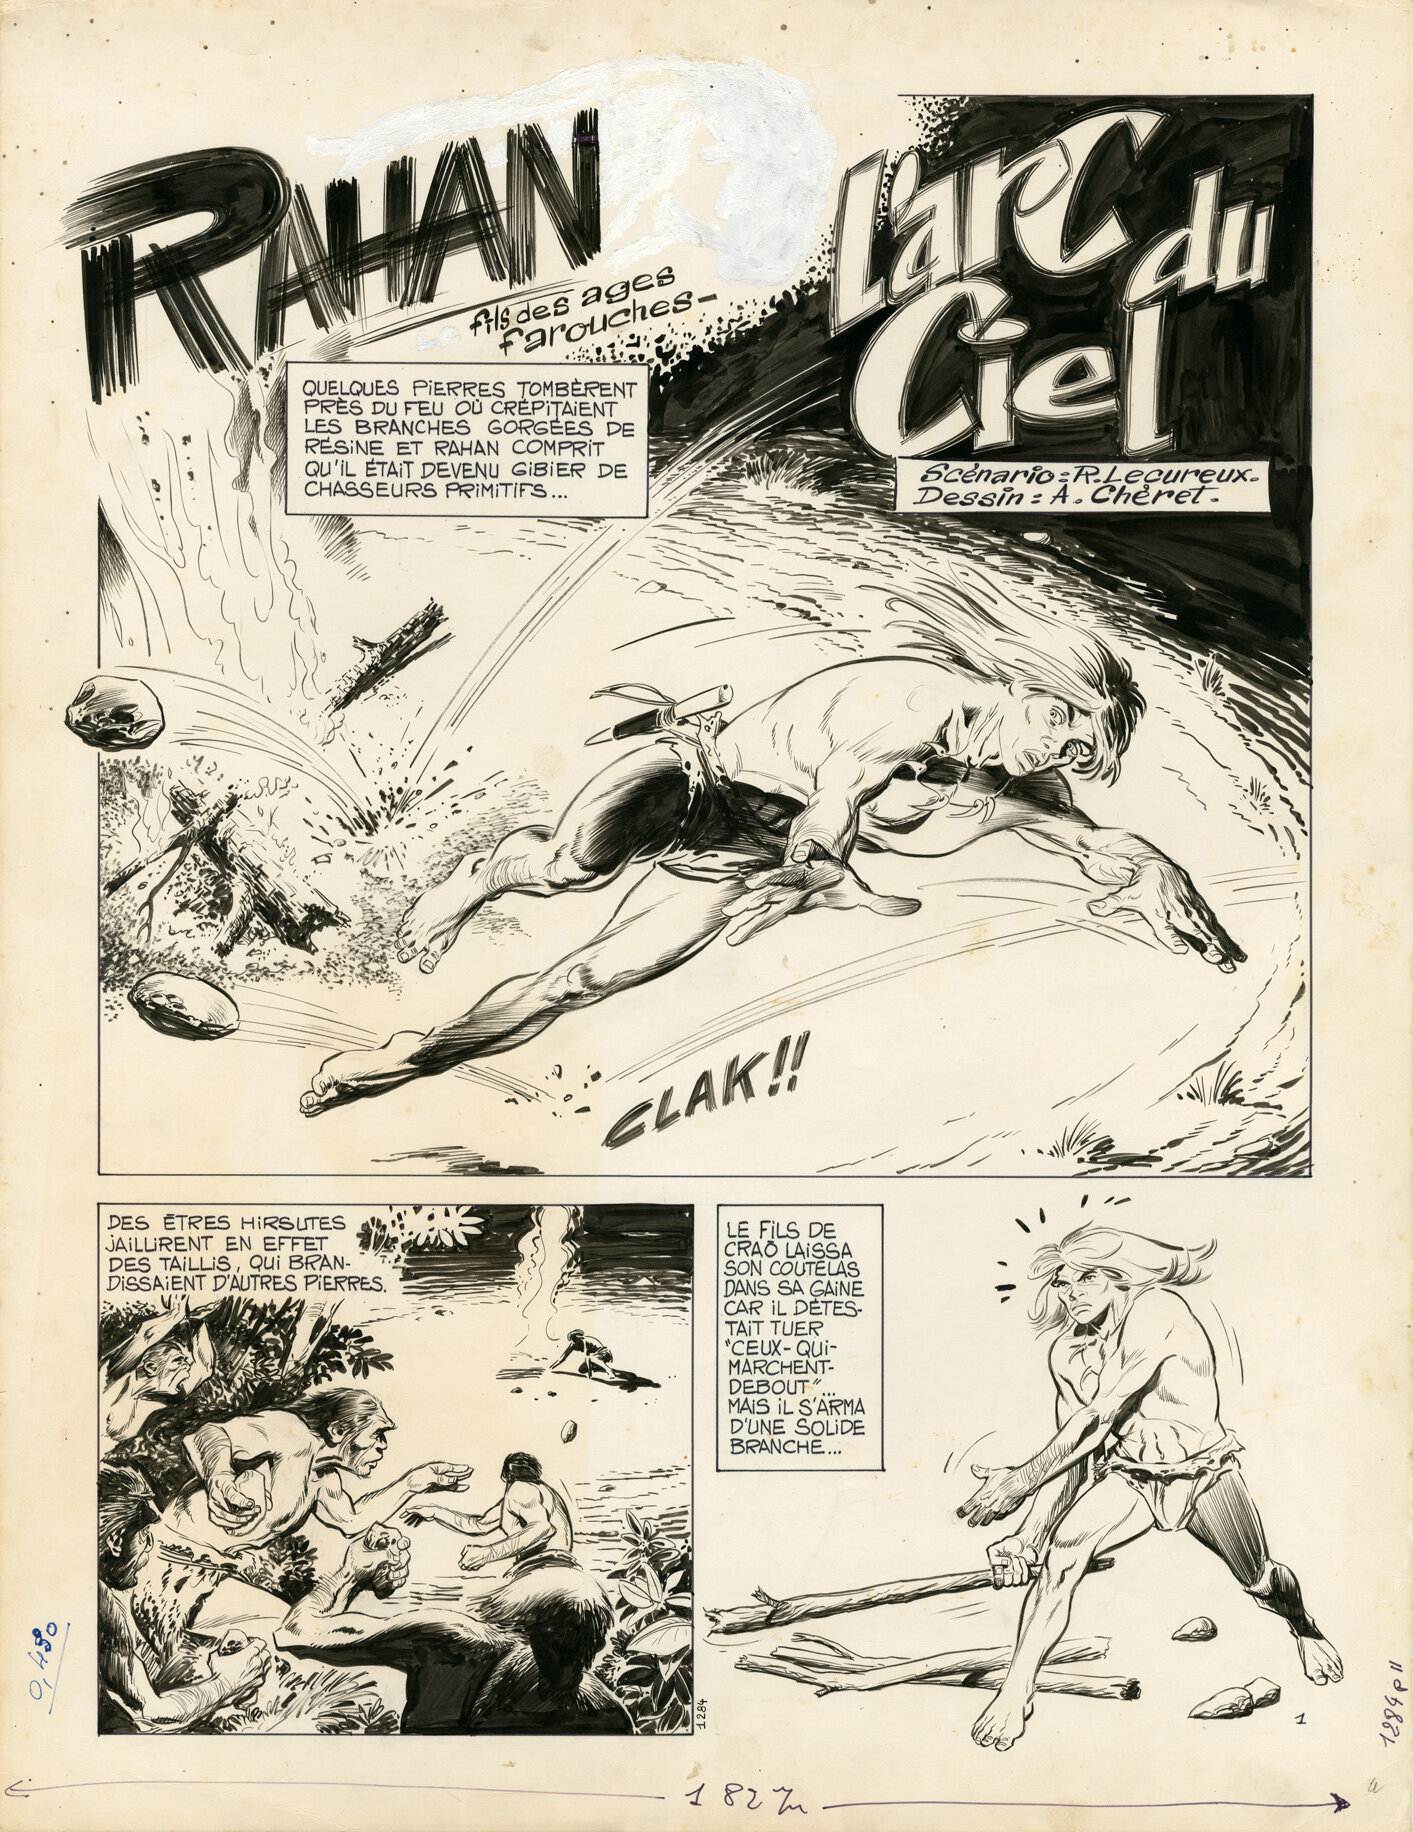 RAHAN exposition planches originales